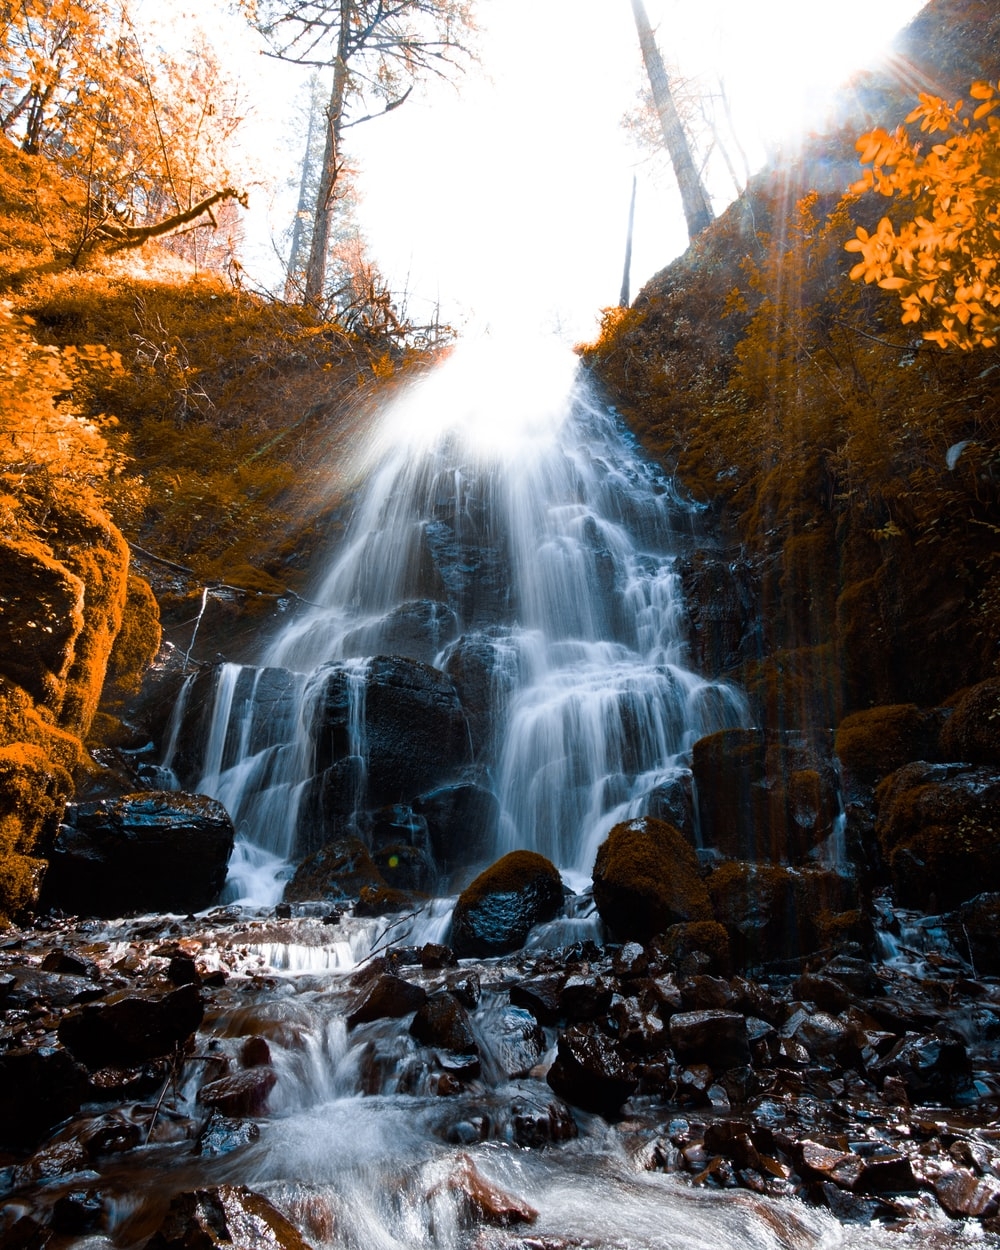 waterfall surrounded by trees during daytime